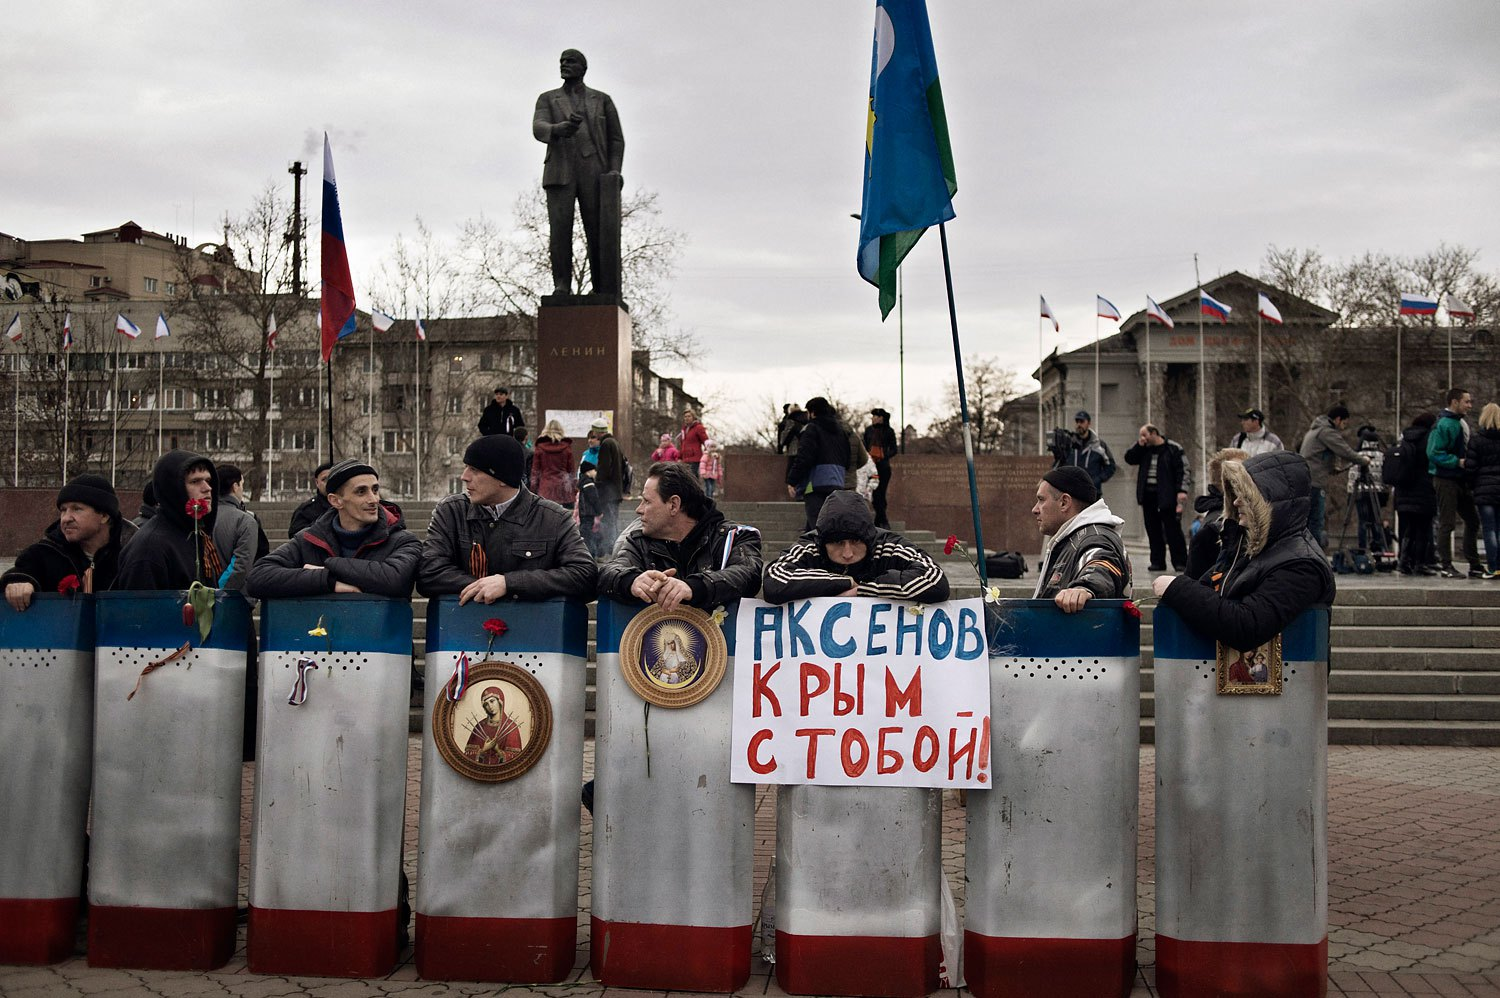 Members of a pro-Russian group stationed themselves in front of government buildings and a statue of Lenin in Simferopol on Sunday.